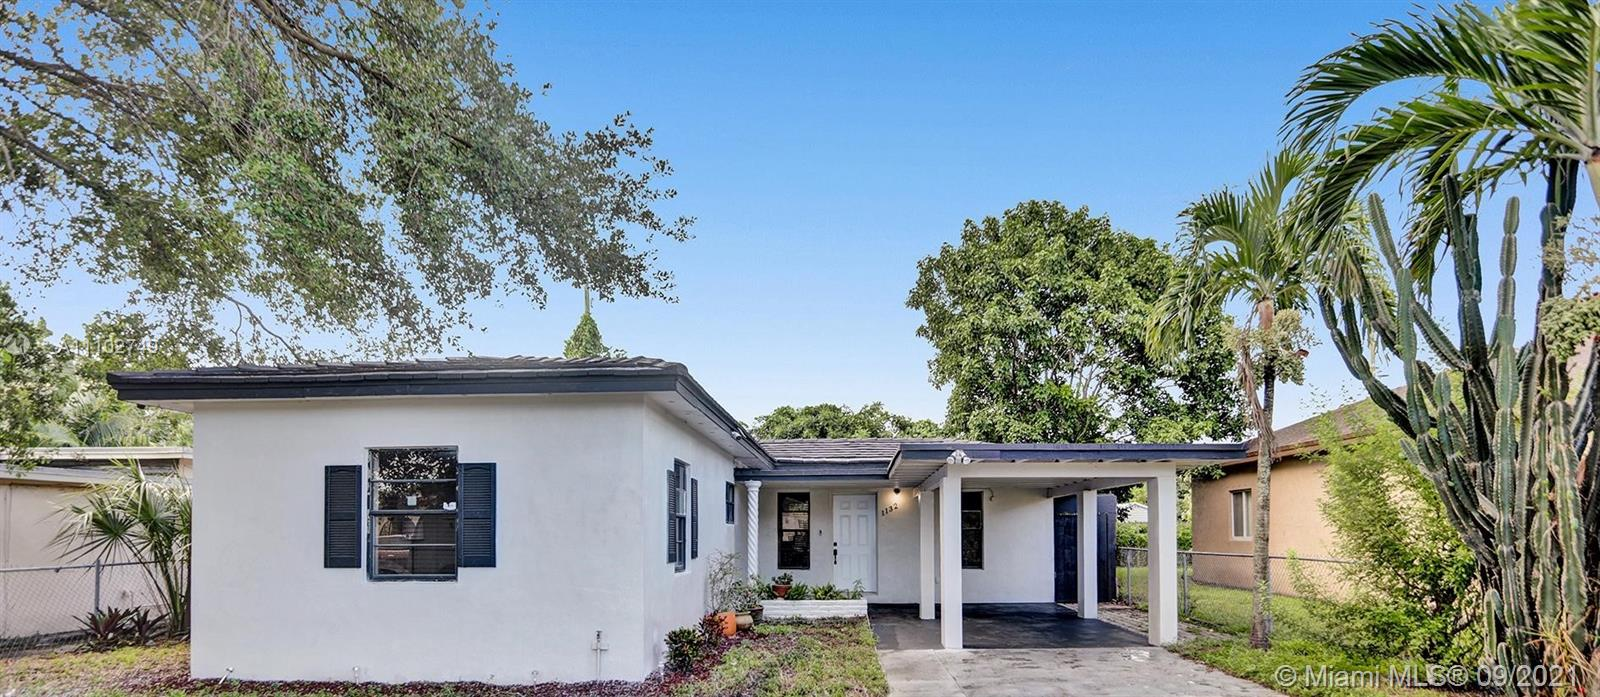 Single Family Home For Sale NORTH SILVER CREST ADDPB990 Sqft